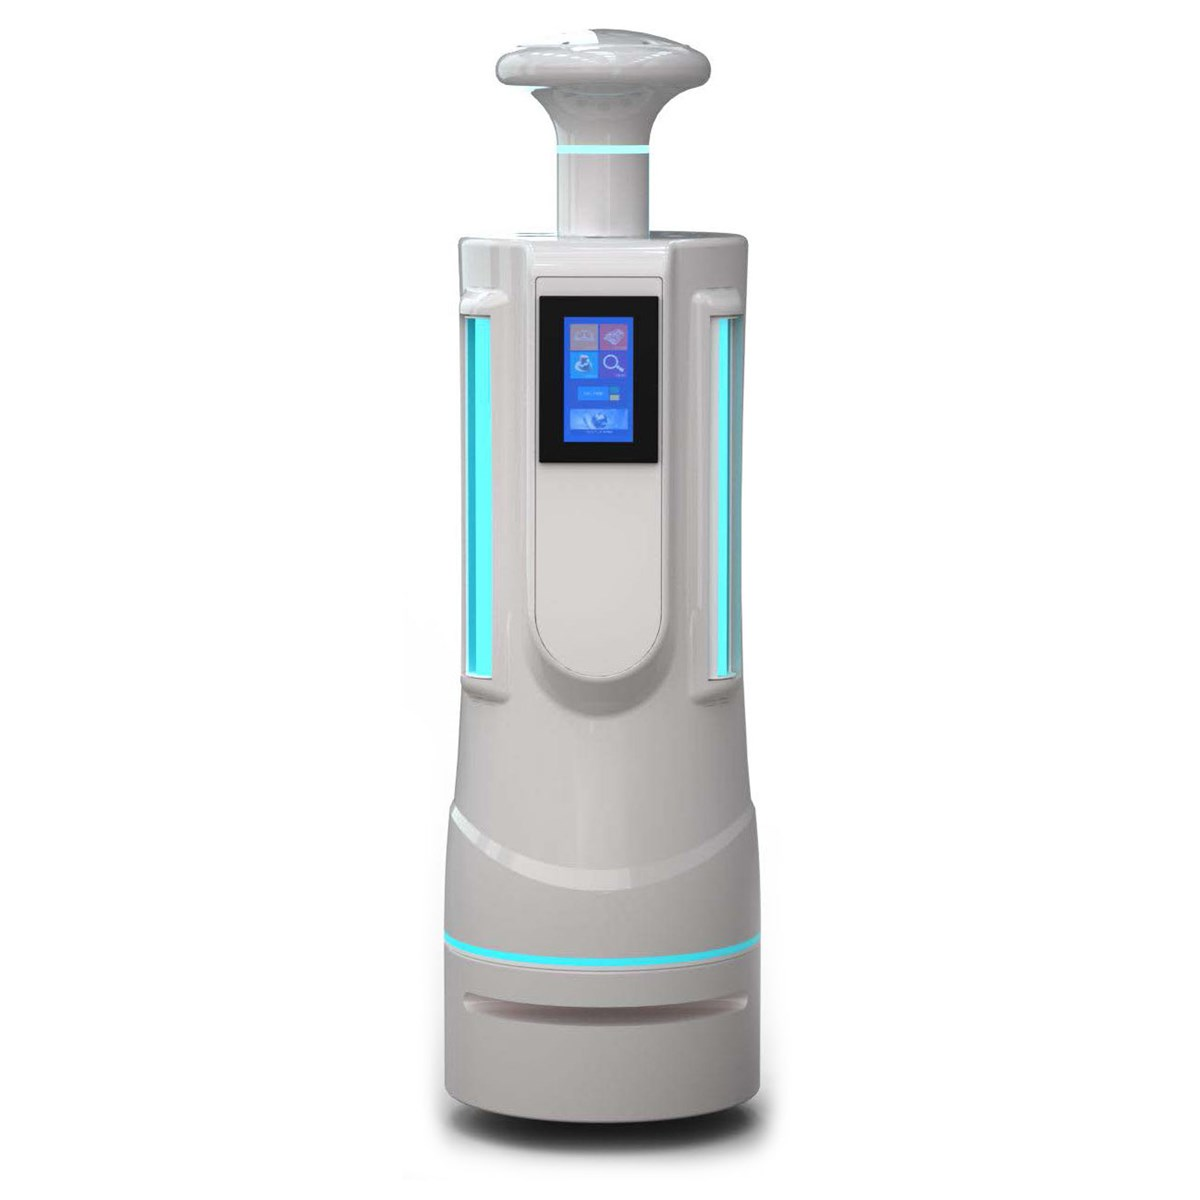 K3 AI Intelligent Disinfection & Purification Robot